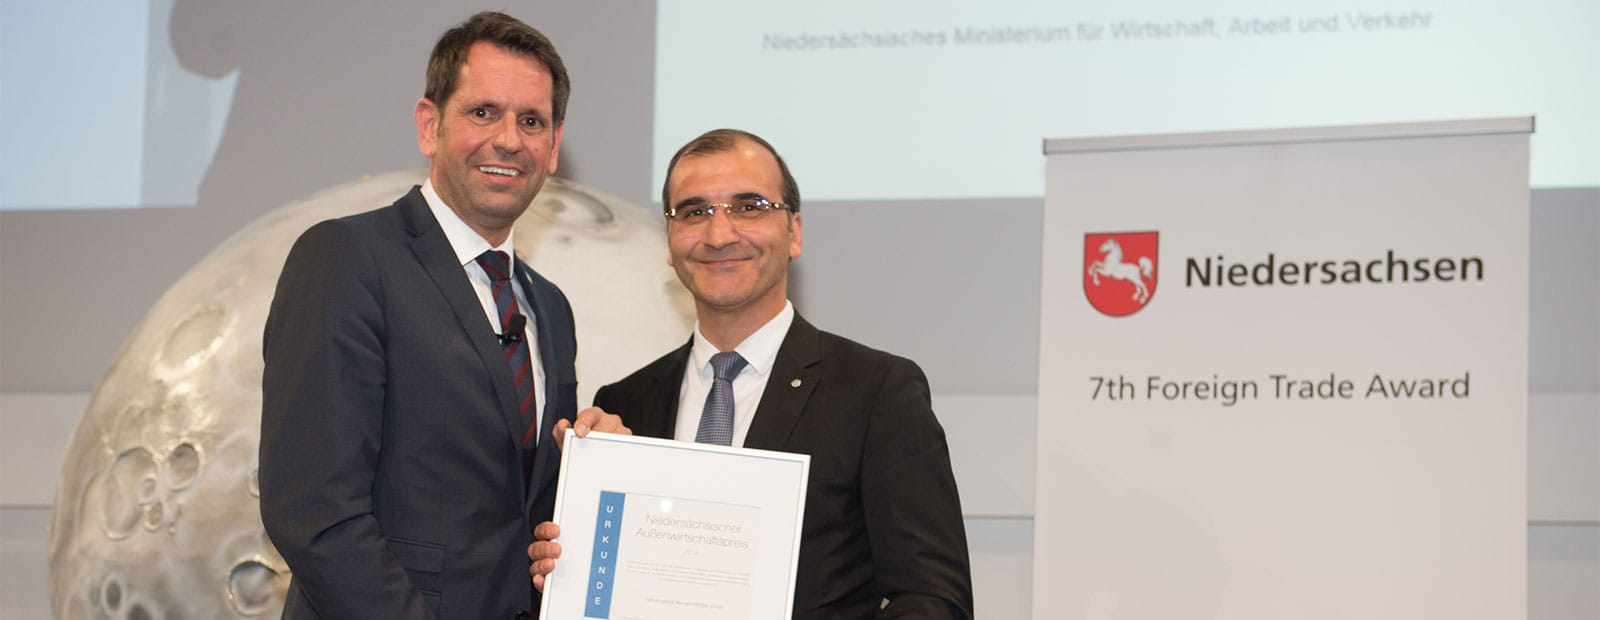 Lower Saxony Foreign Trade Prize has been awarded